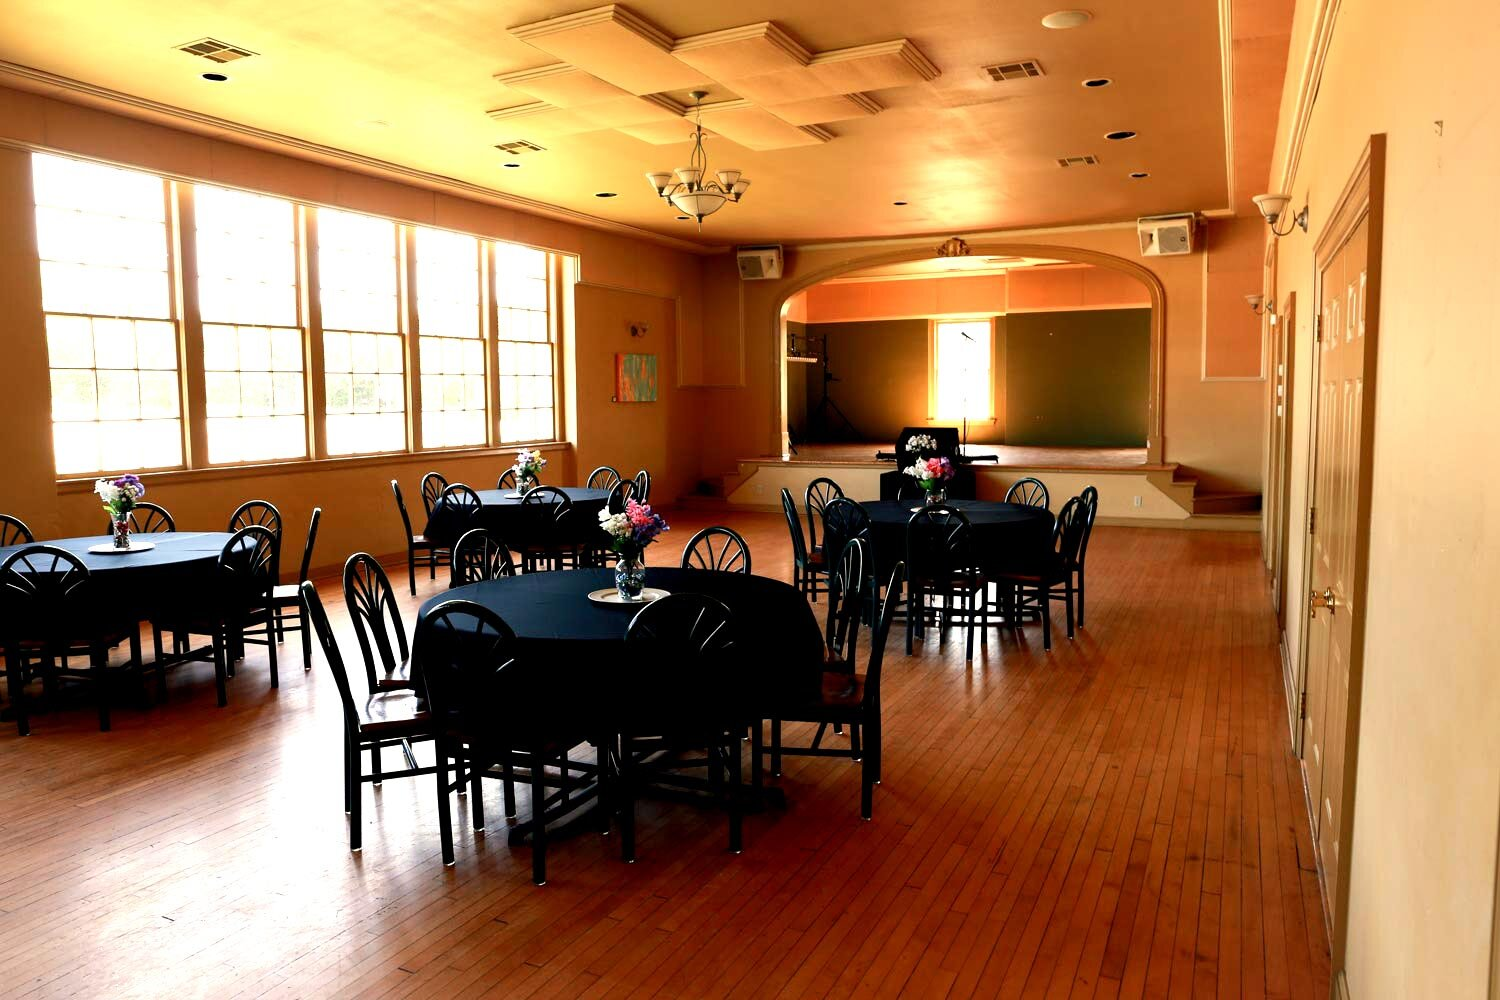 Event Space - Our 8,000 sq. ft. venue is perfect for your wedding or event. Located in Drumright in a quaint, beautiful historic venue, our facility lends a touch of romance and class to your event. With facility-wide sound both indoors and outdoors, our state-of-the-art venue will not only serve as a beautiful, elegant backdrop for your big event but also blow your guests away with a full range of amenities and services.